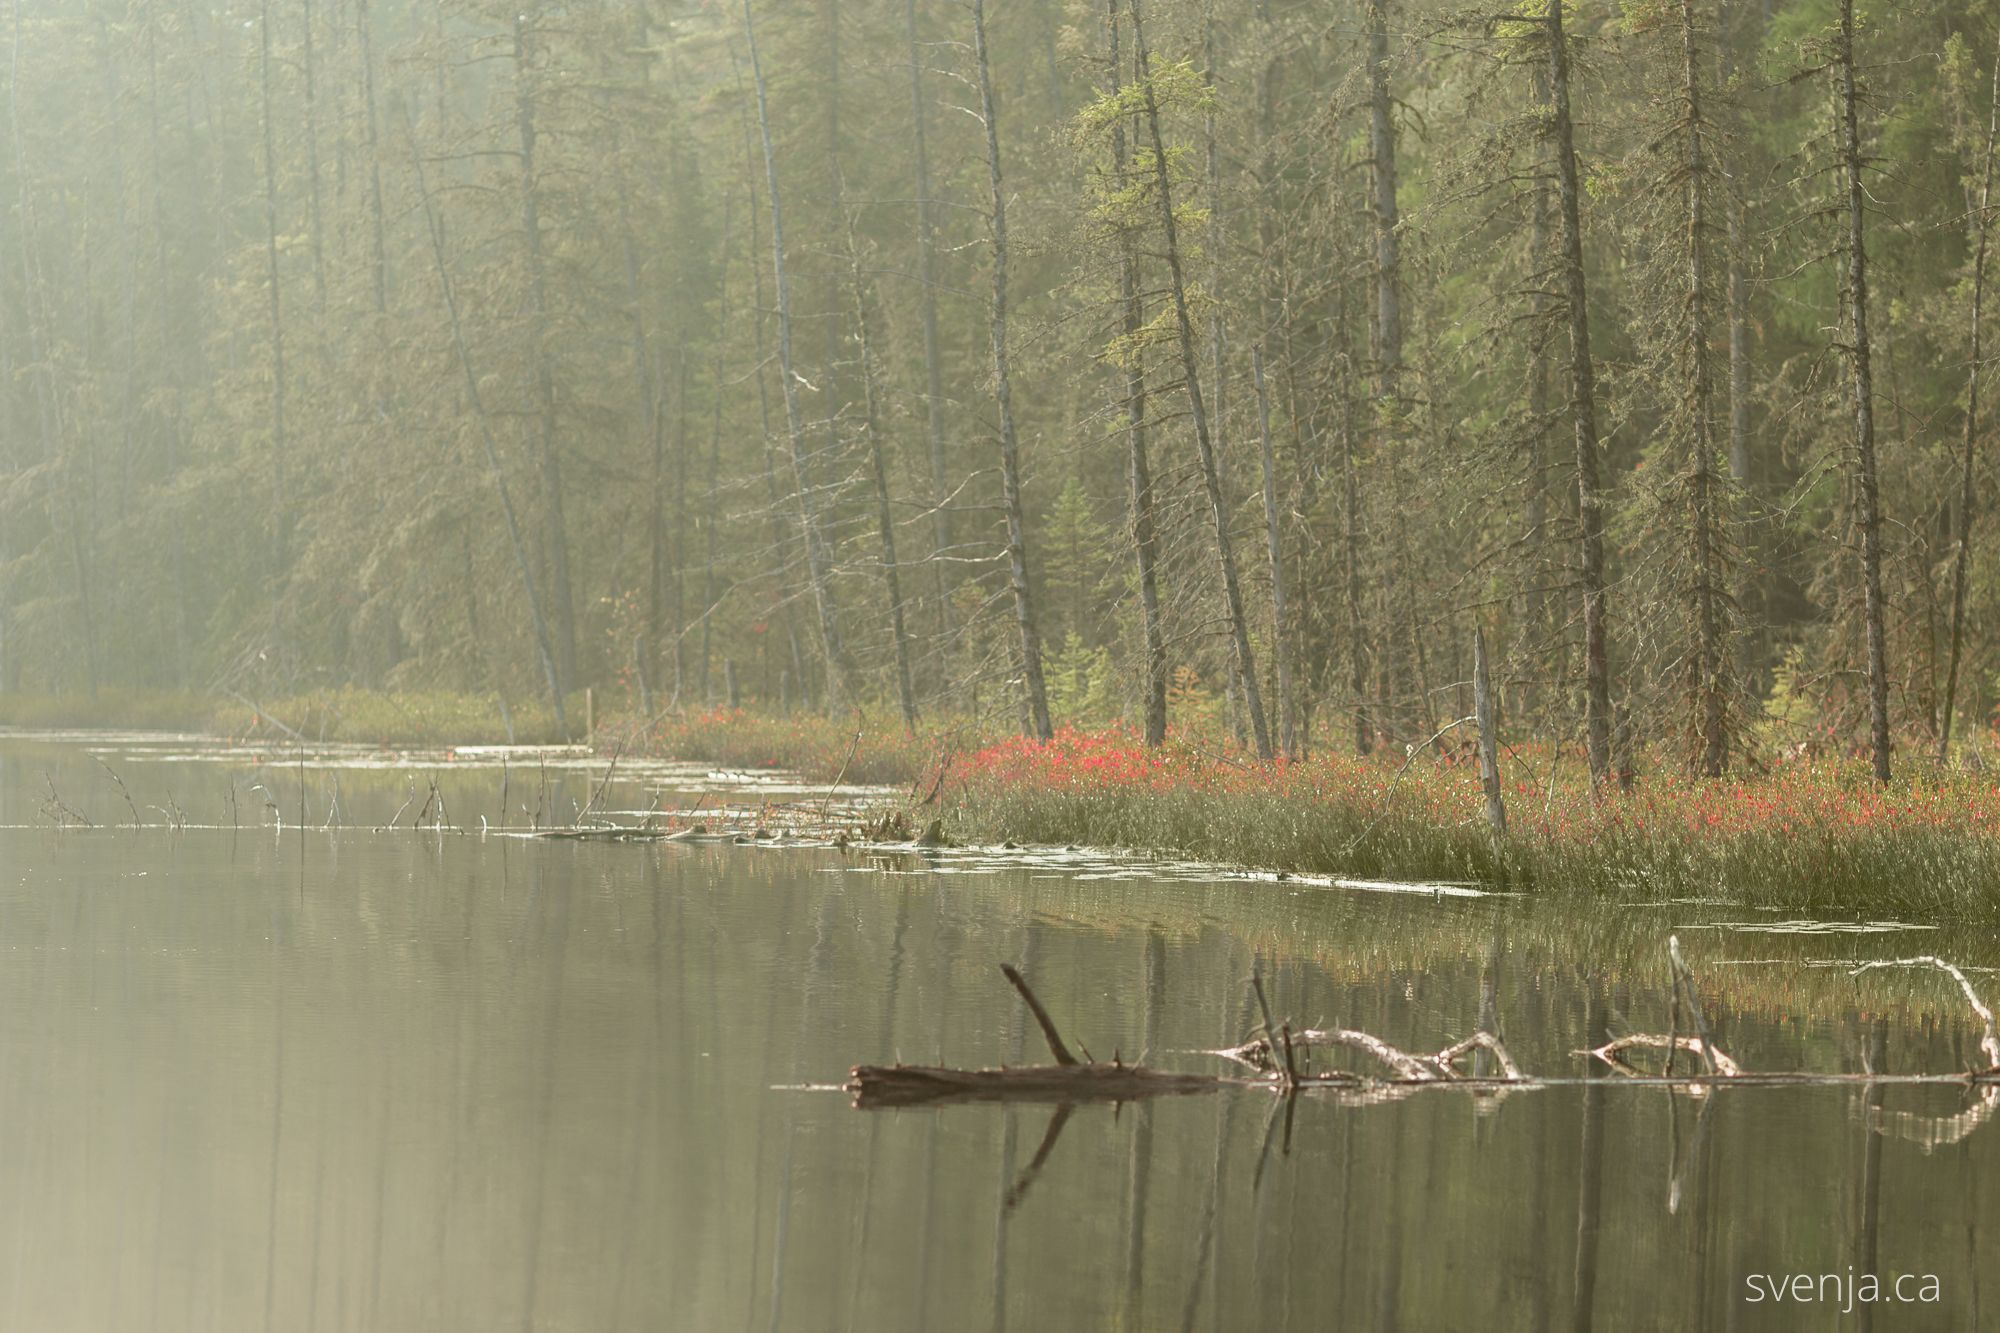 Loon on a solitary morning swim